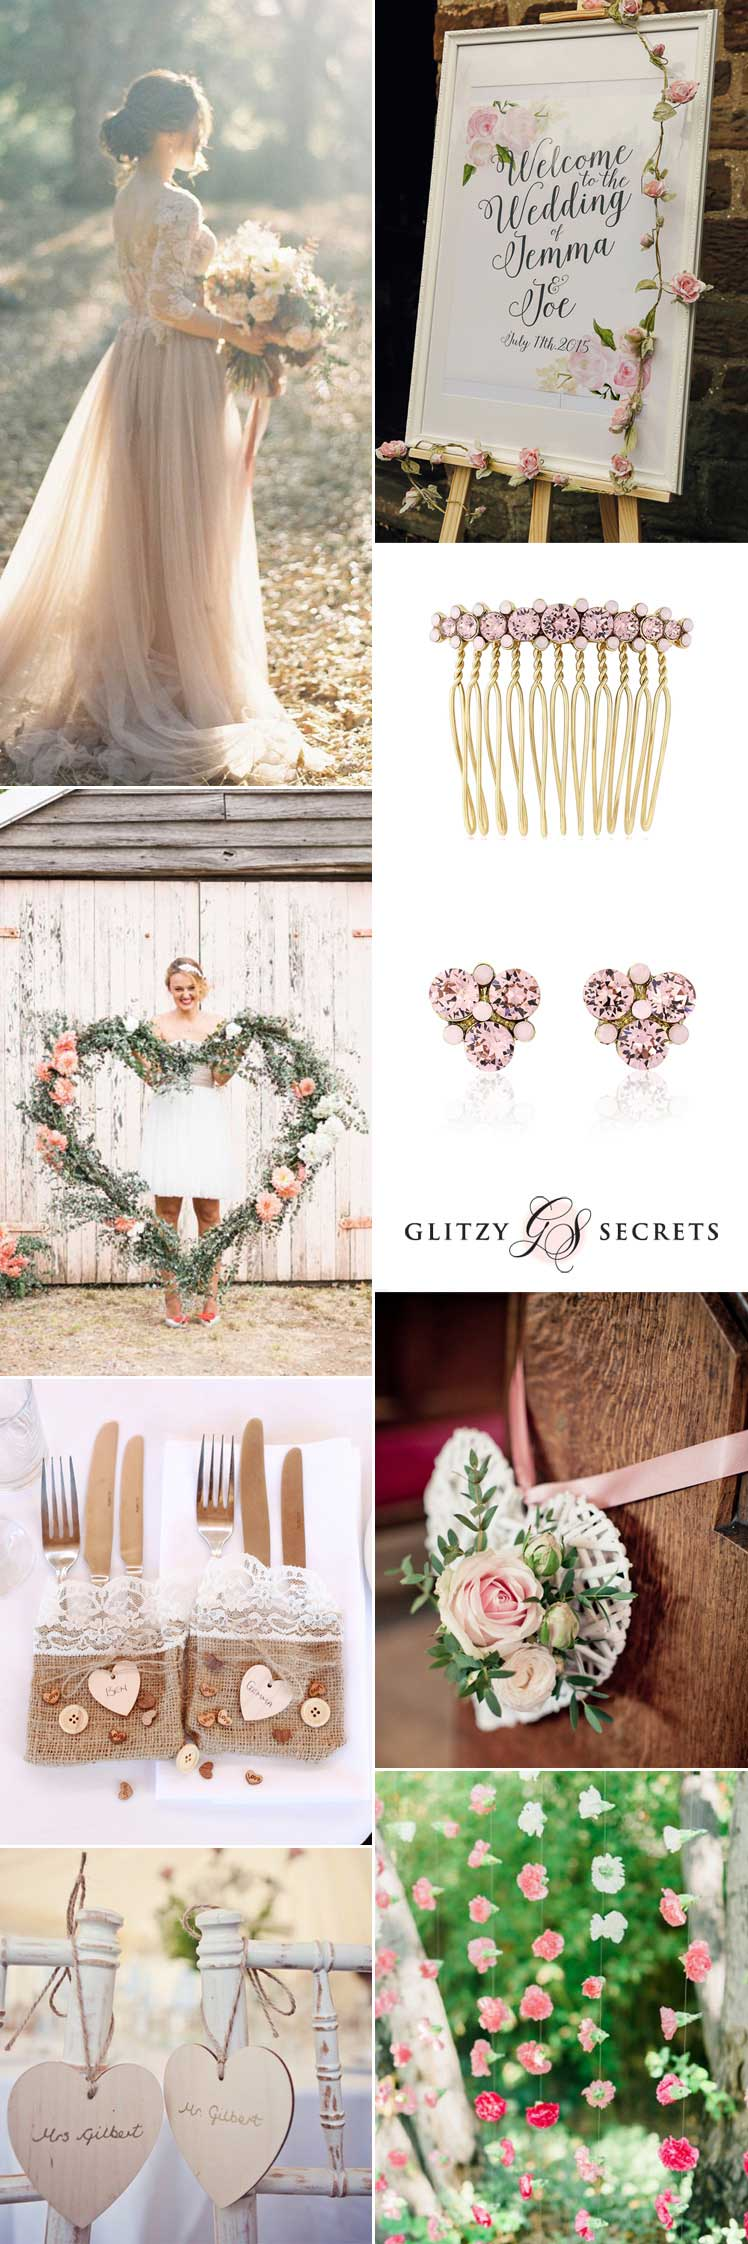 a shabby chic valentines wedding